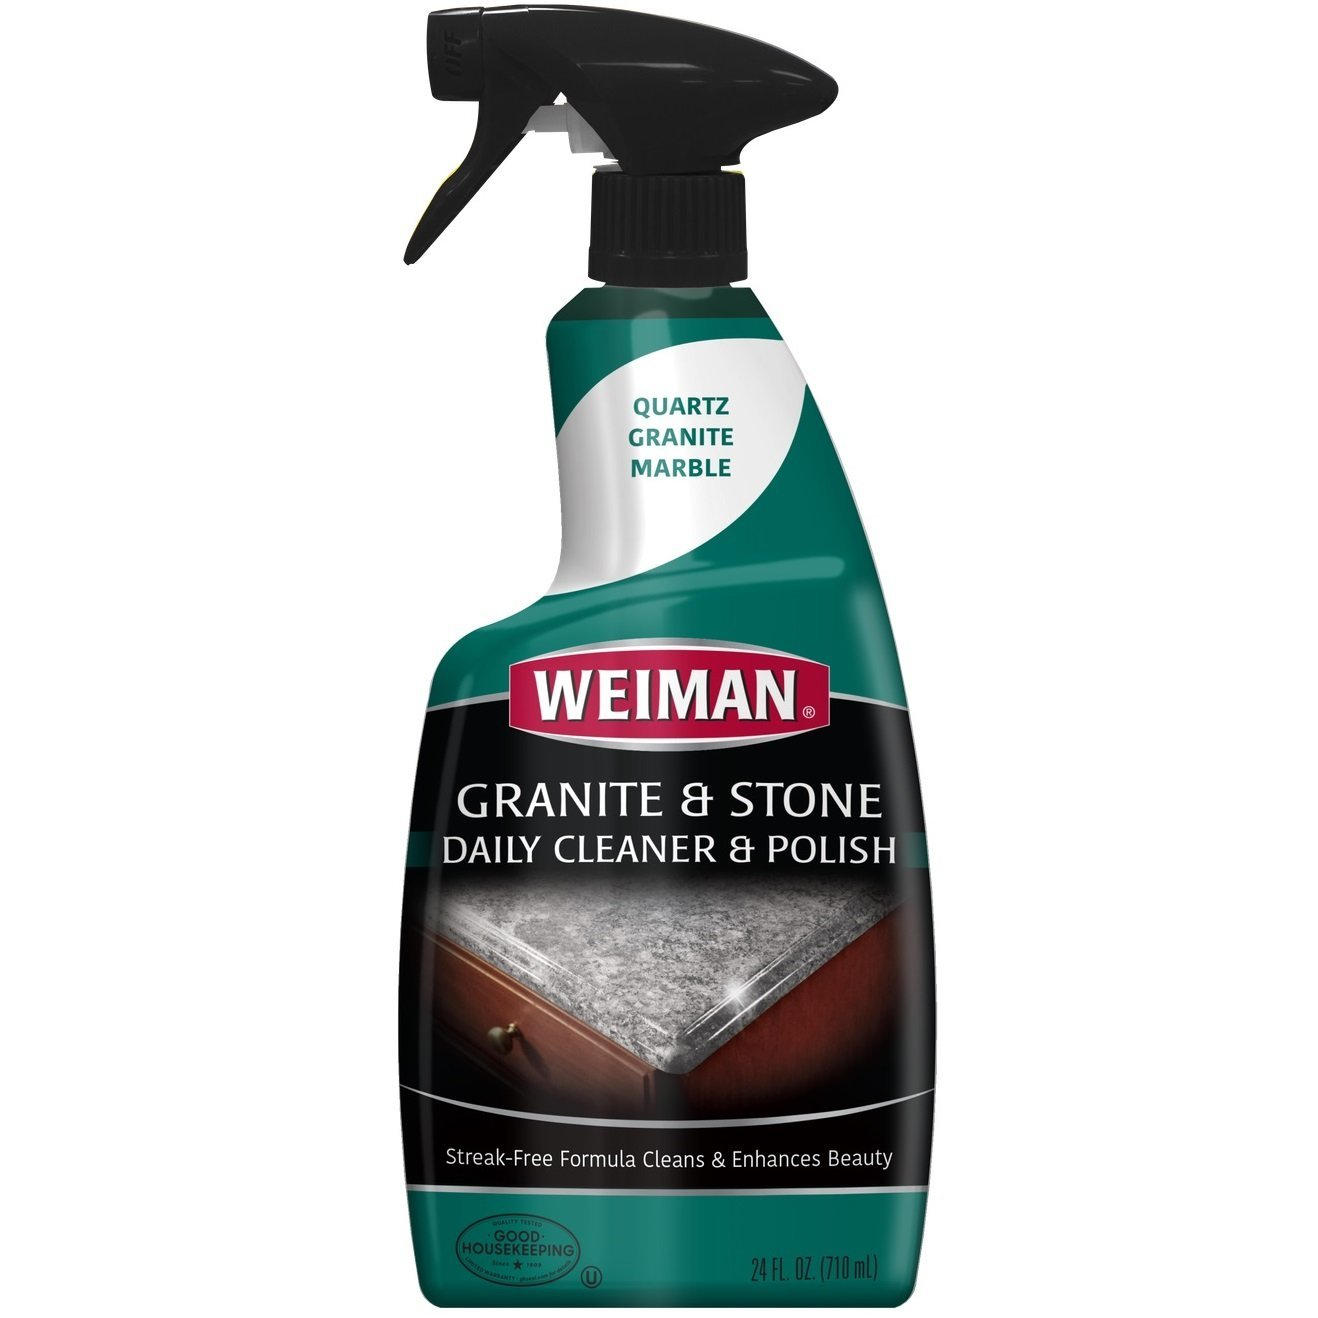 The Best Granite Cleaner 2